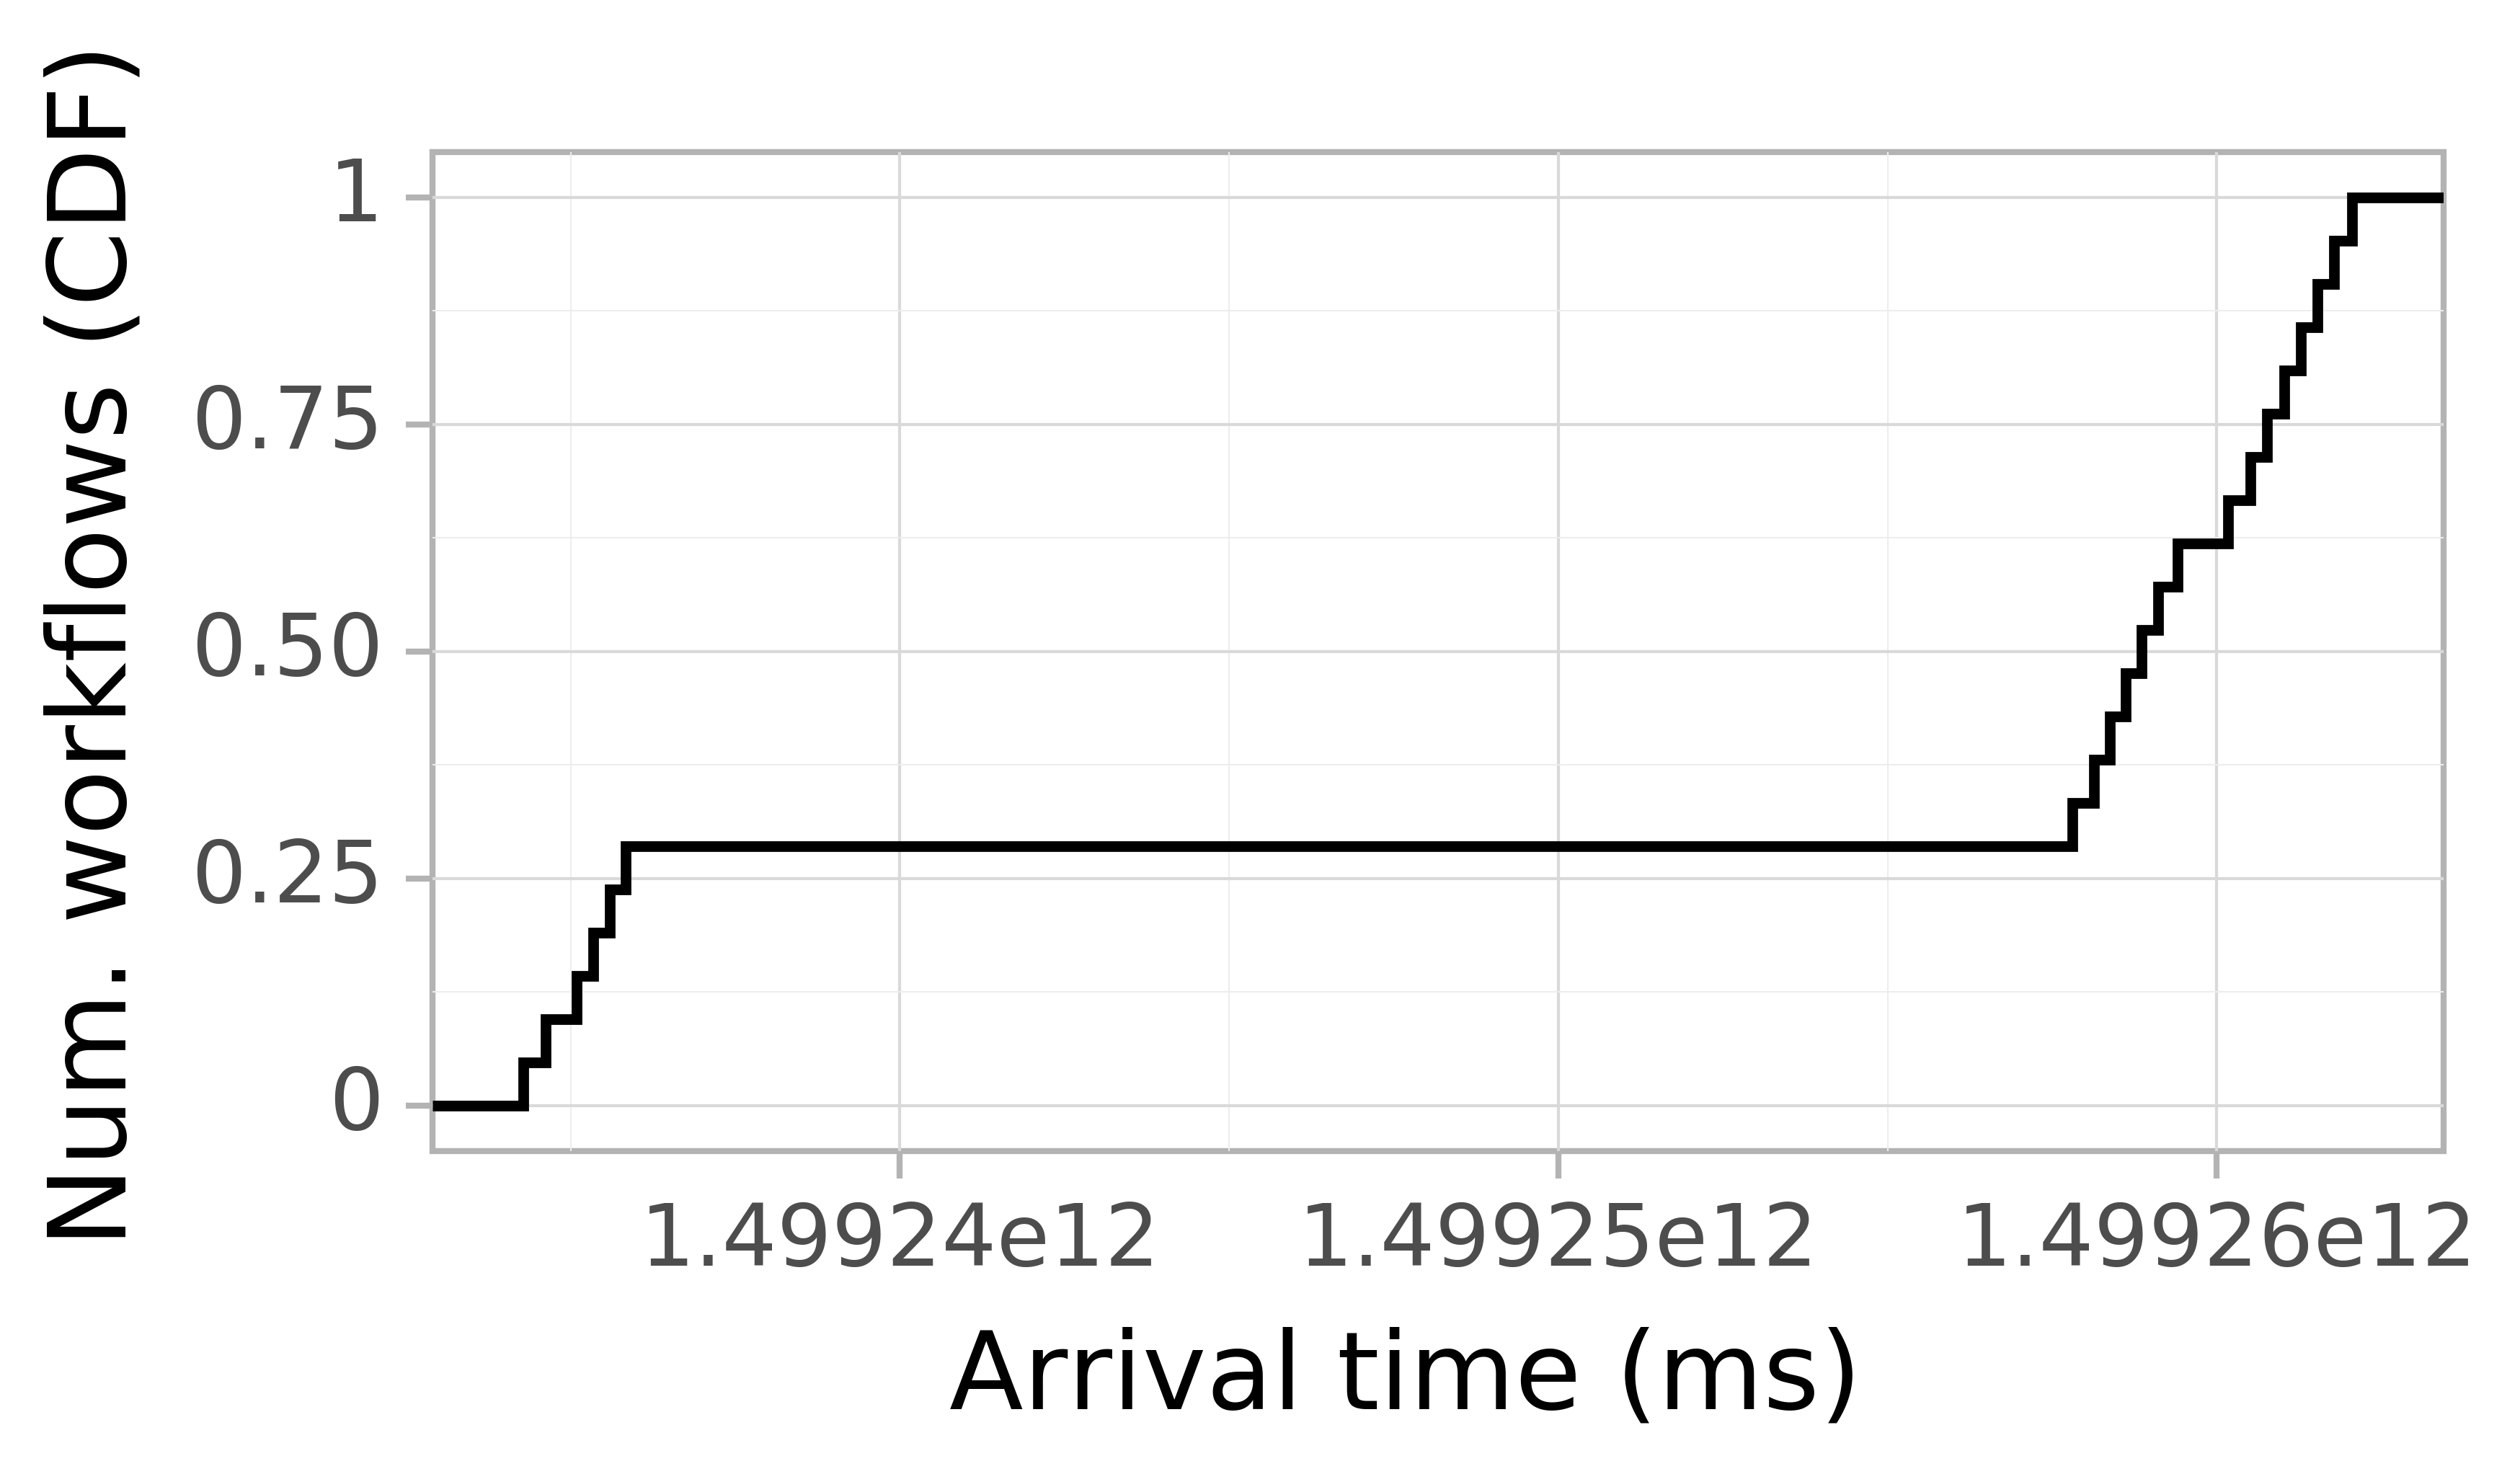 Job arrival CDF graph for the askalon-new_ee36 trace.